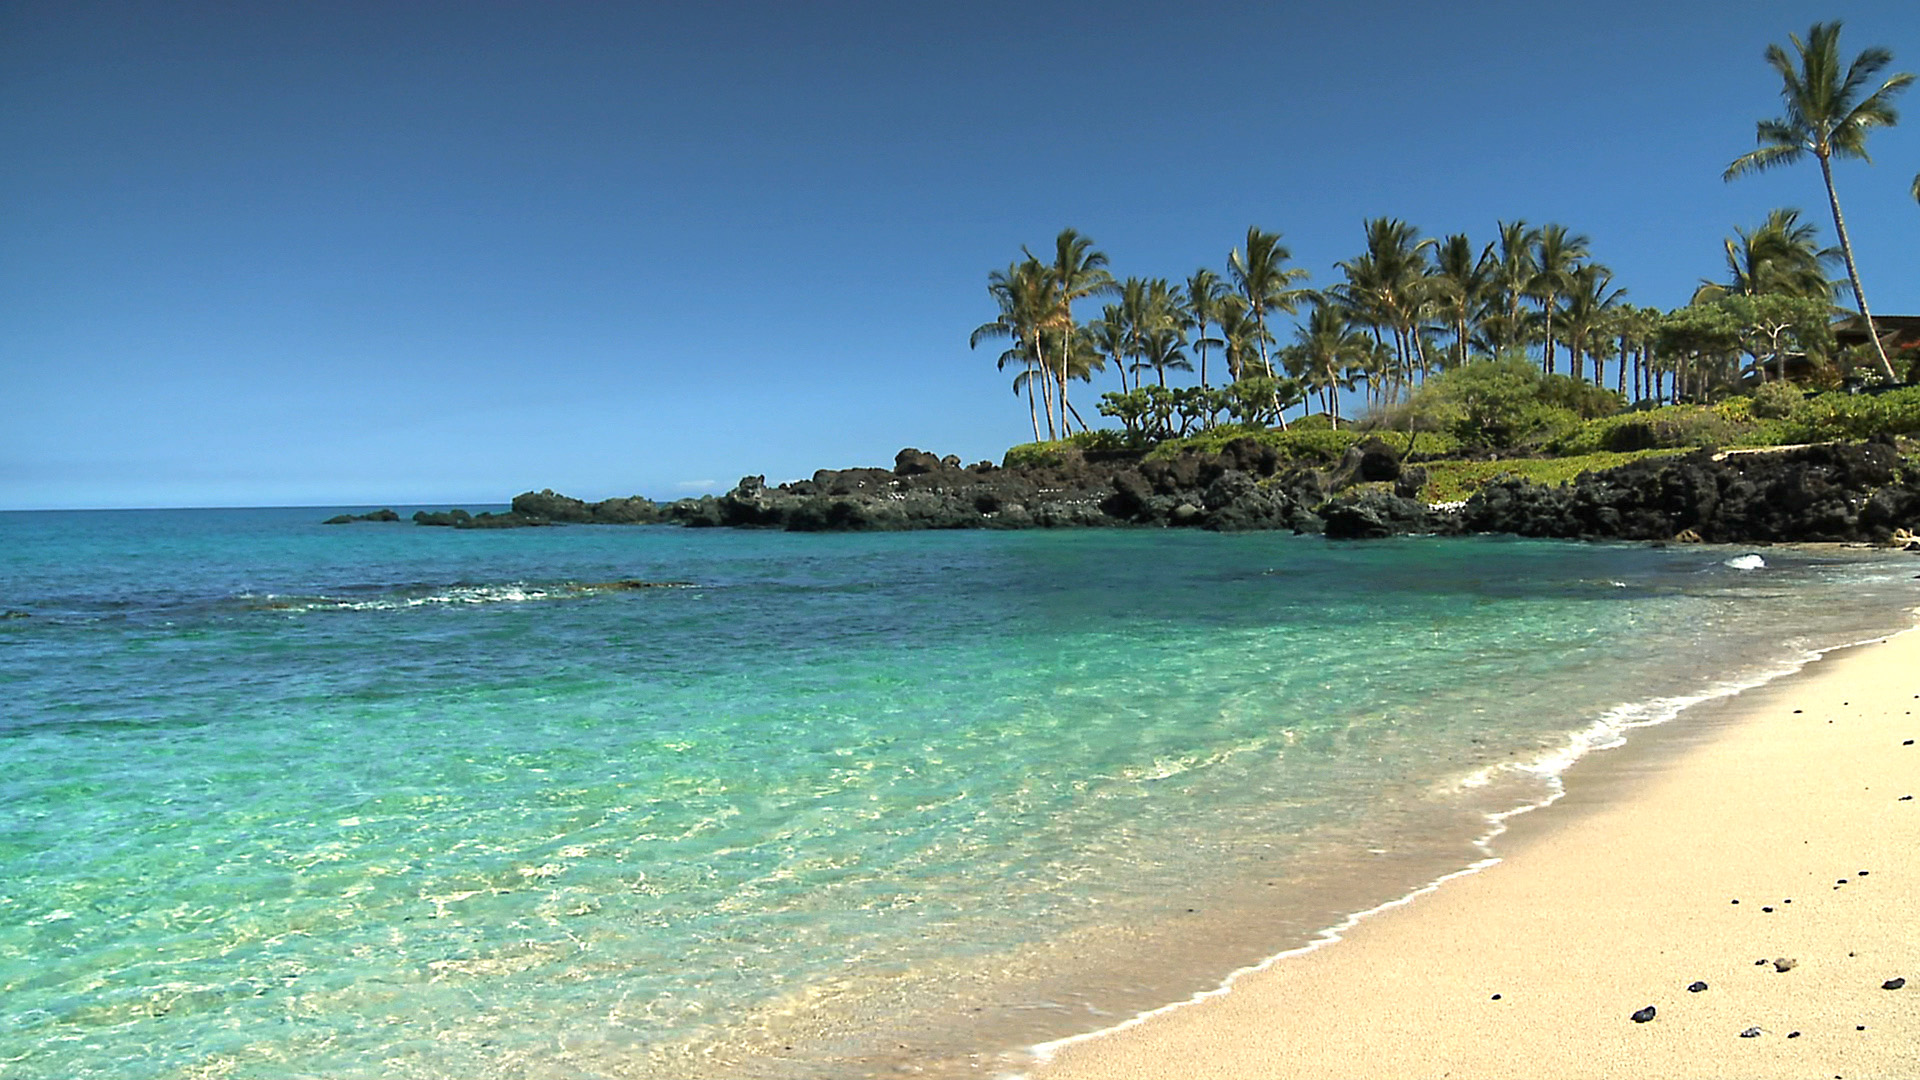 hawaii - photo #17